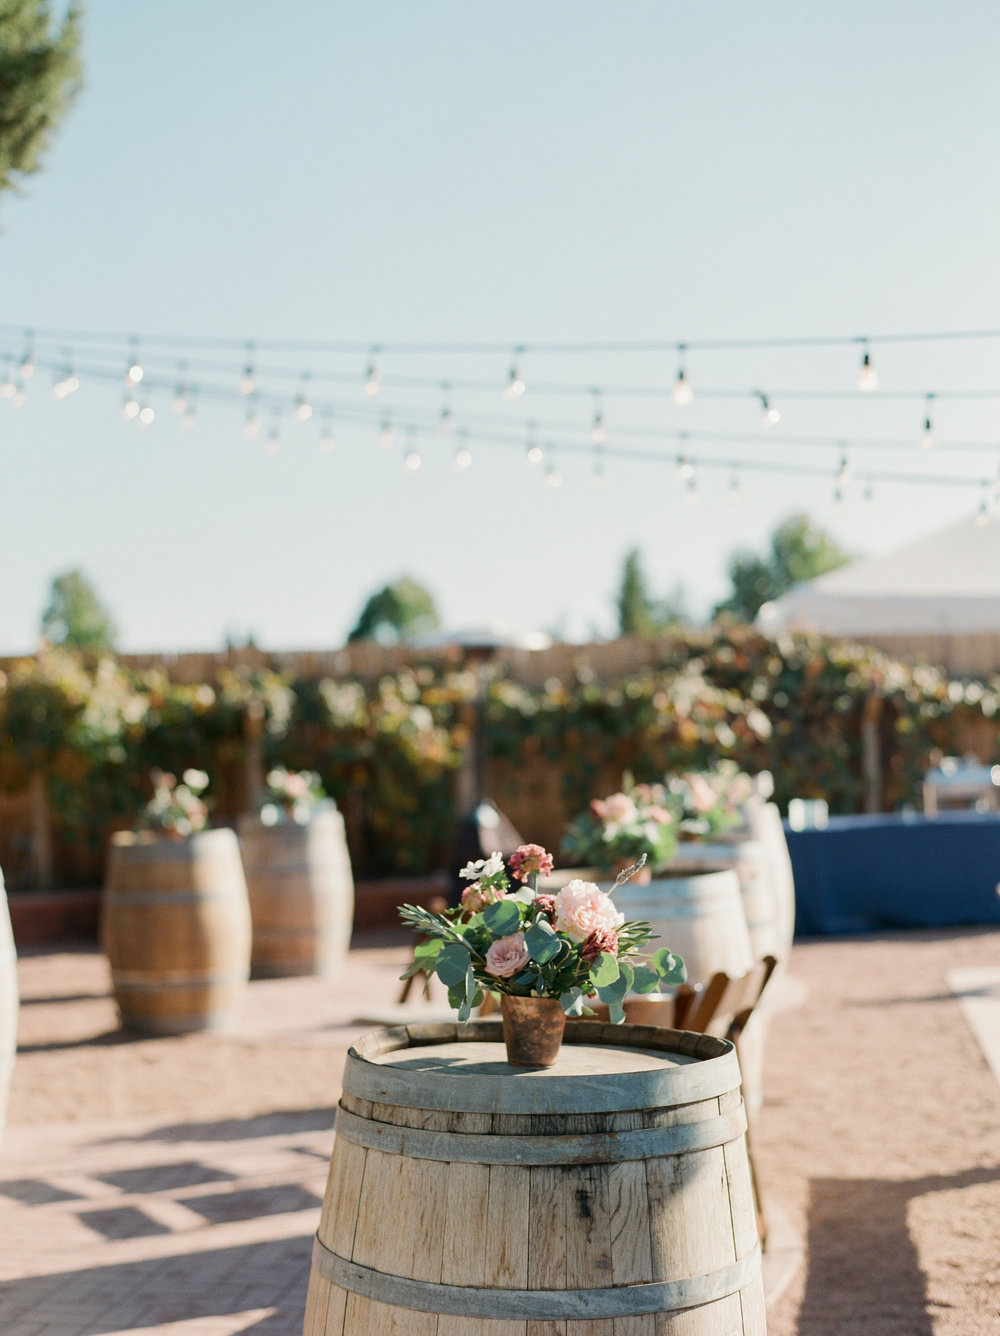 An Intimate Sedona Wedding Nestled in the Arizona Red Rocks  - Tremaine Ranch - AZ Arizona Wedding & Event, Vintage, Furniture, Tableware, & Specialty Rentals in Phoenix, Tucson, Flagstaff, Sedona, Tempe, Chandler, Mesa, Gilbert, Prescott, Payson 529.jpg